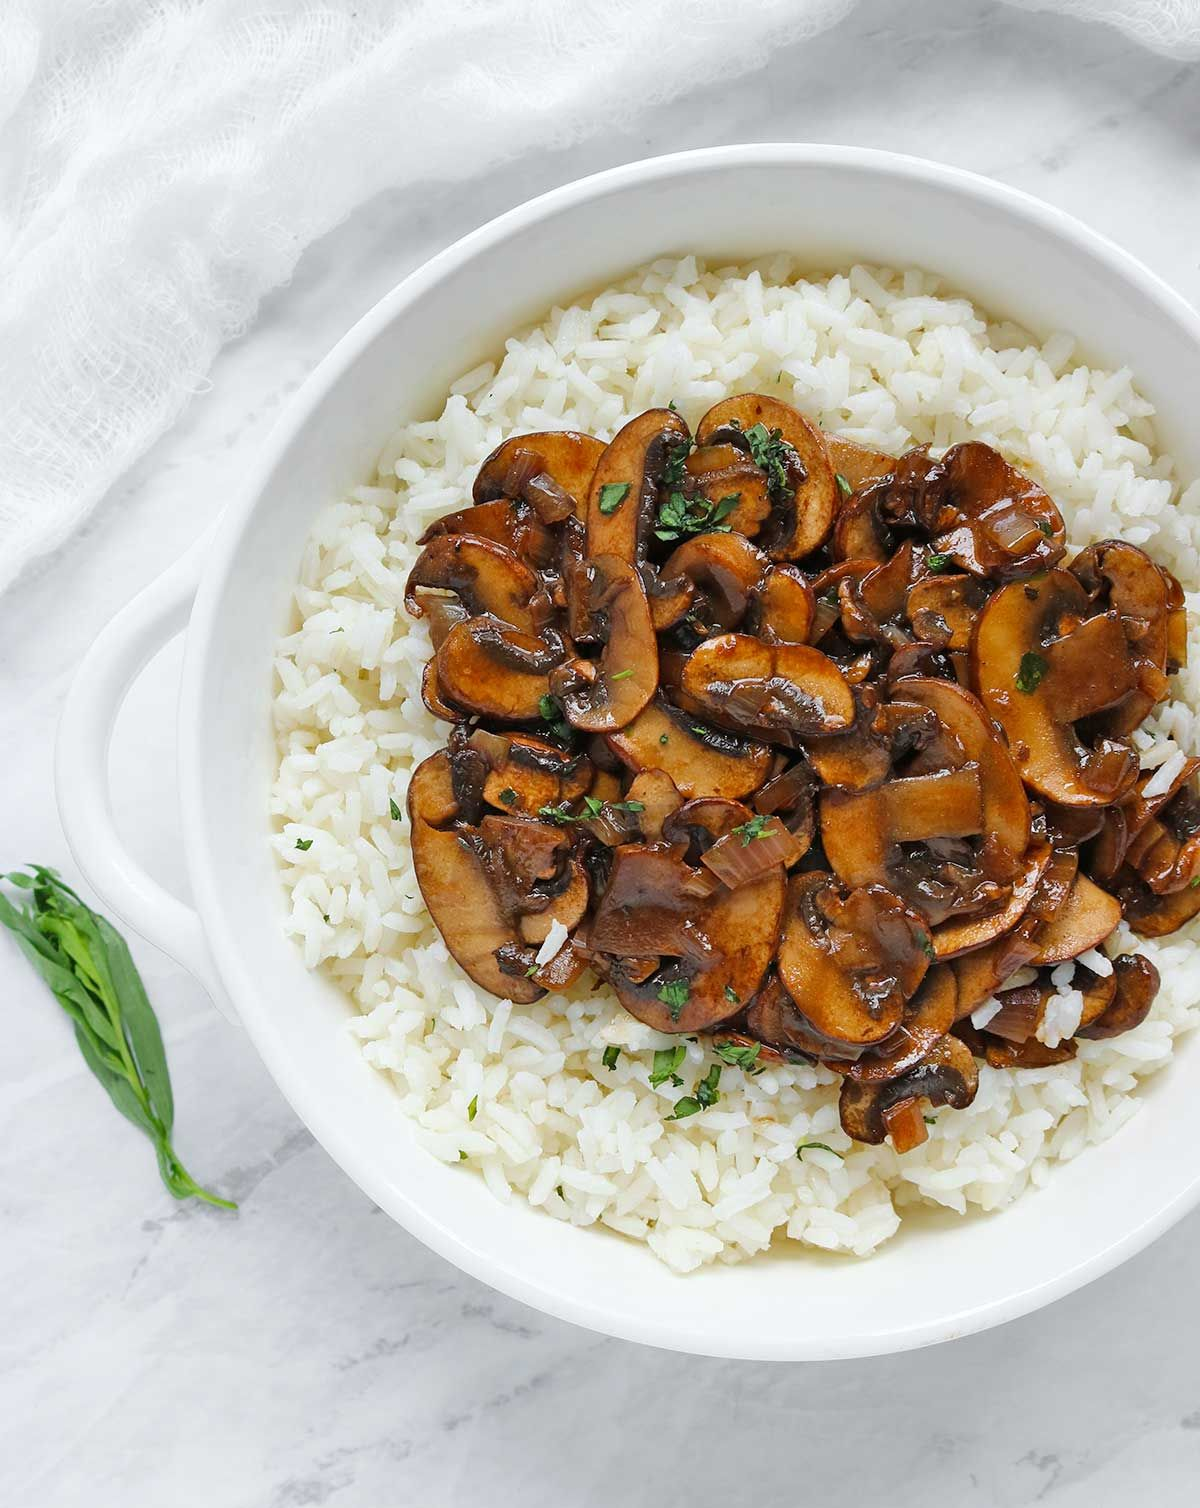 Balsamic Mushrooms with Tarragon Rice -  rich, meaty, cremini mushrooms sauteed in butter with a sweet balsamic glaze, and served over tarragon-accented rice. -   SoupAddict.com   vegetarian